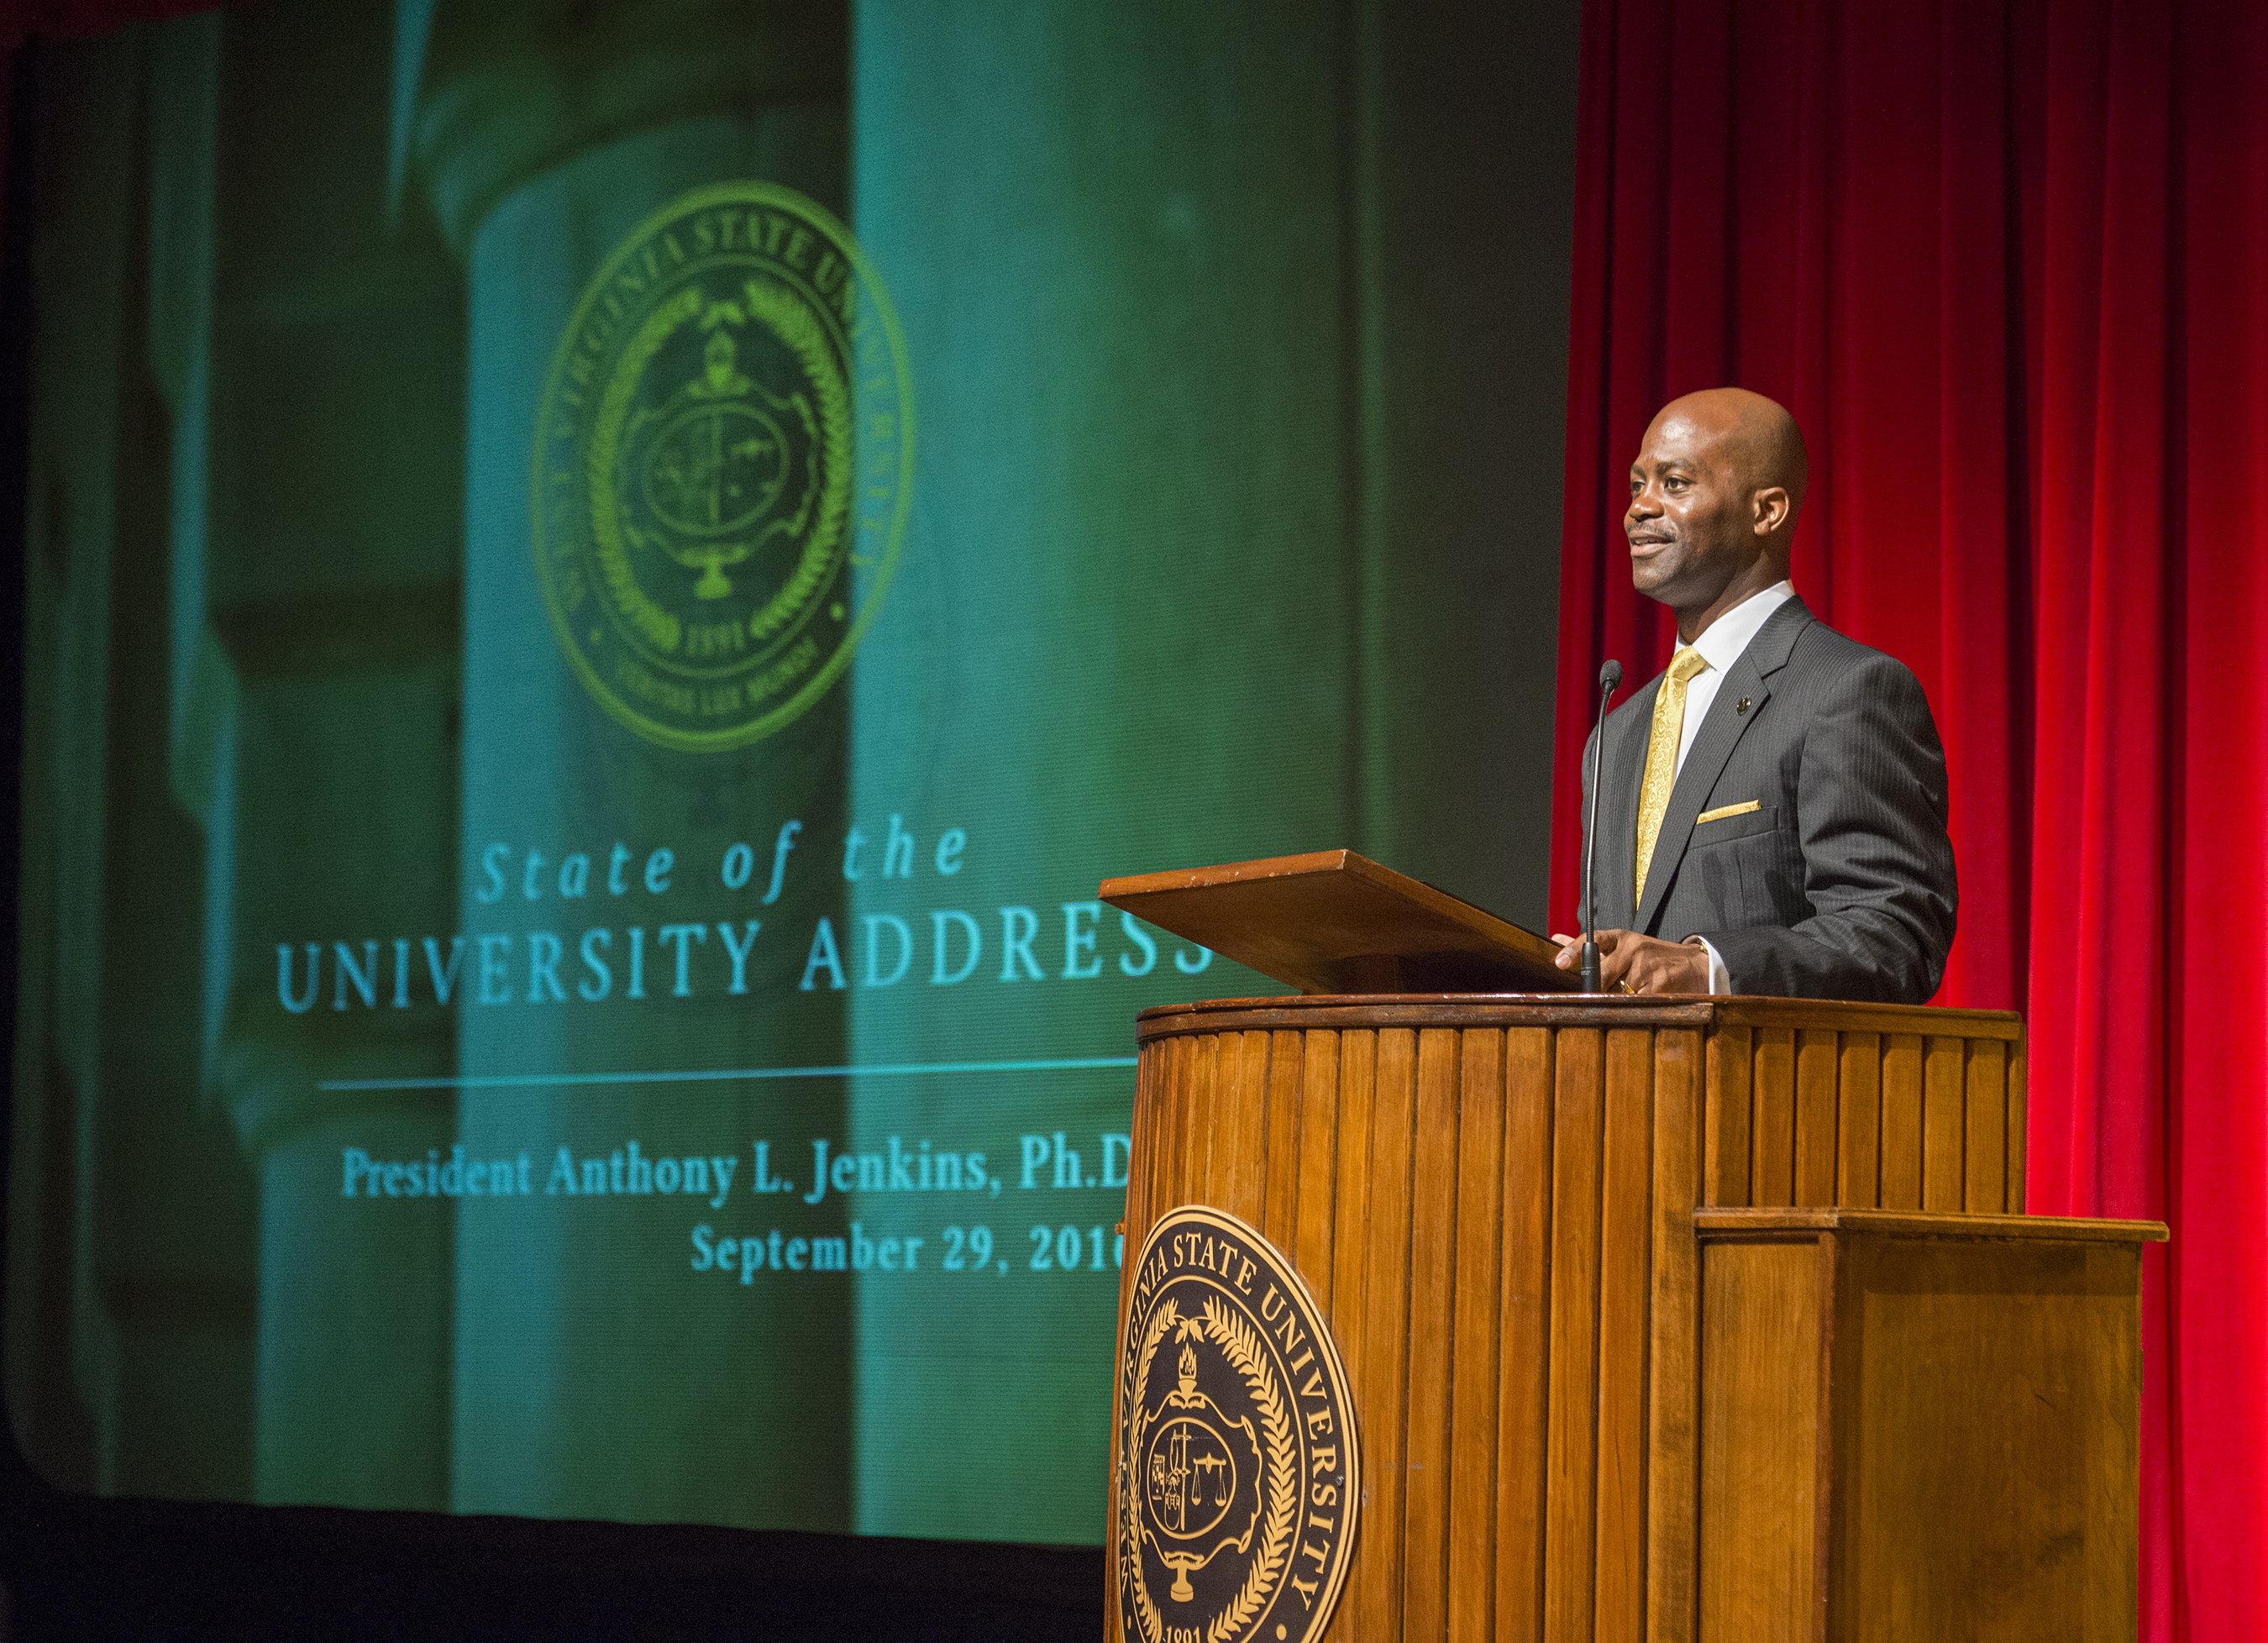 President Jenkins 2016 State of the University Address